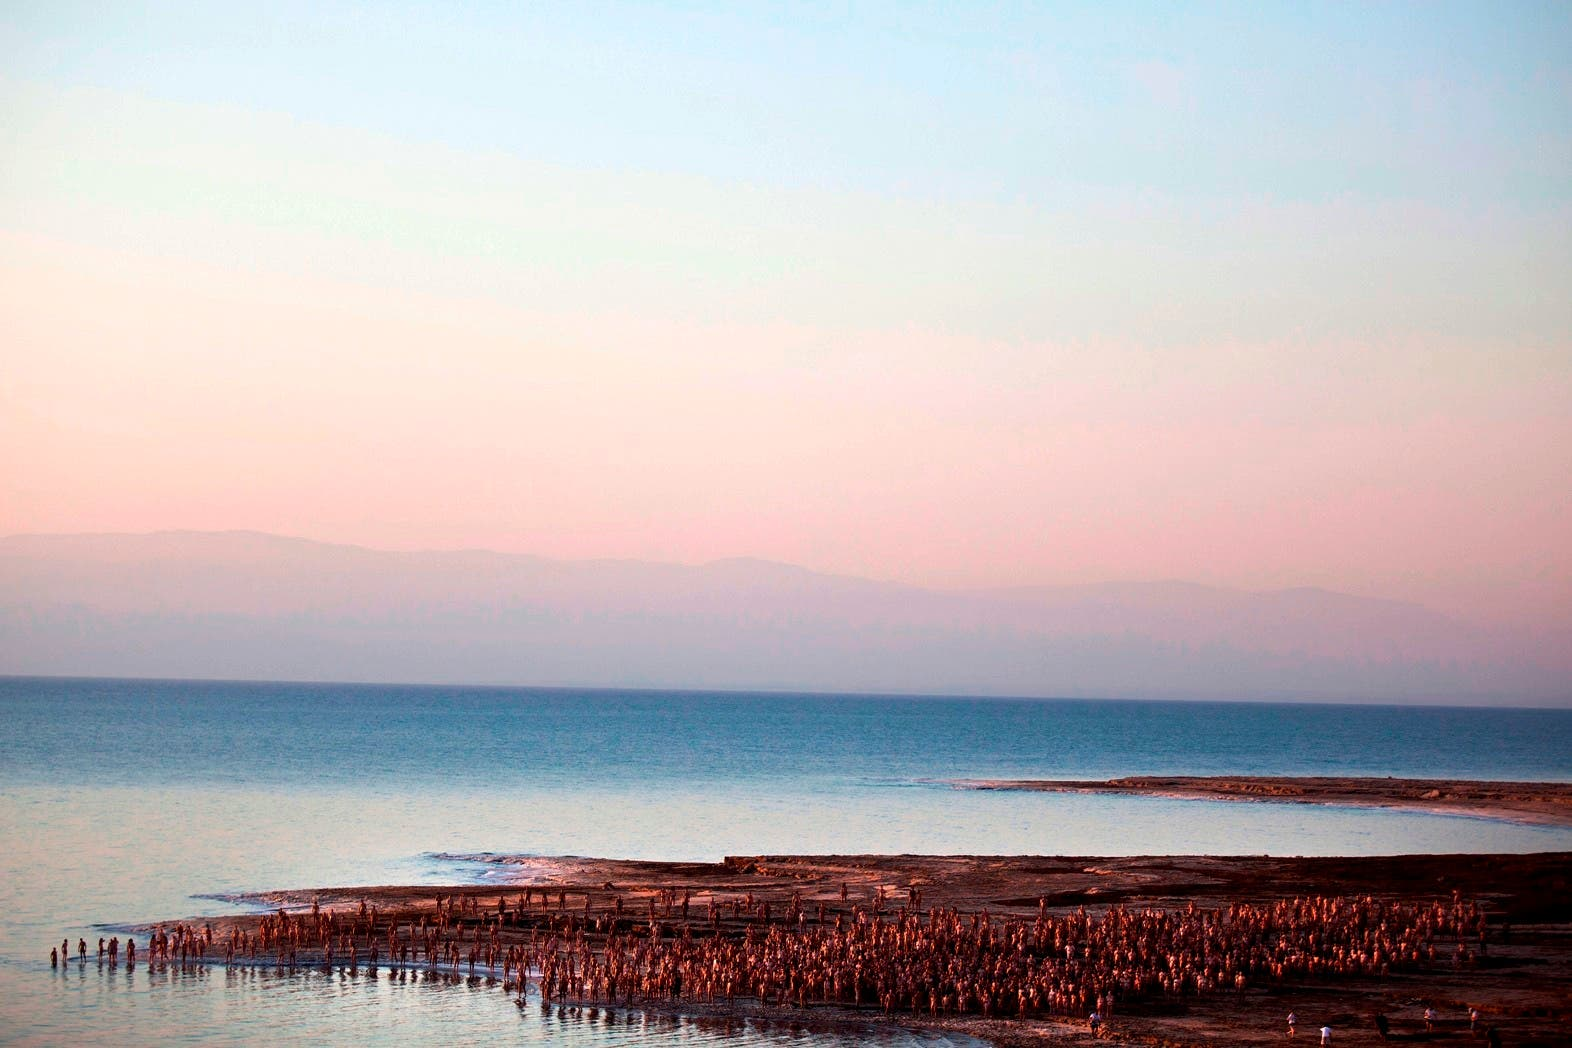 Jordan is preparing to hold a World Economic Forum meetin on the MENA region at the Dead Sea